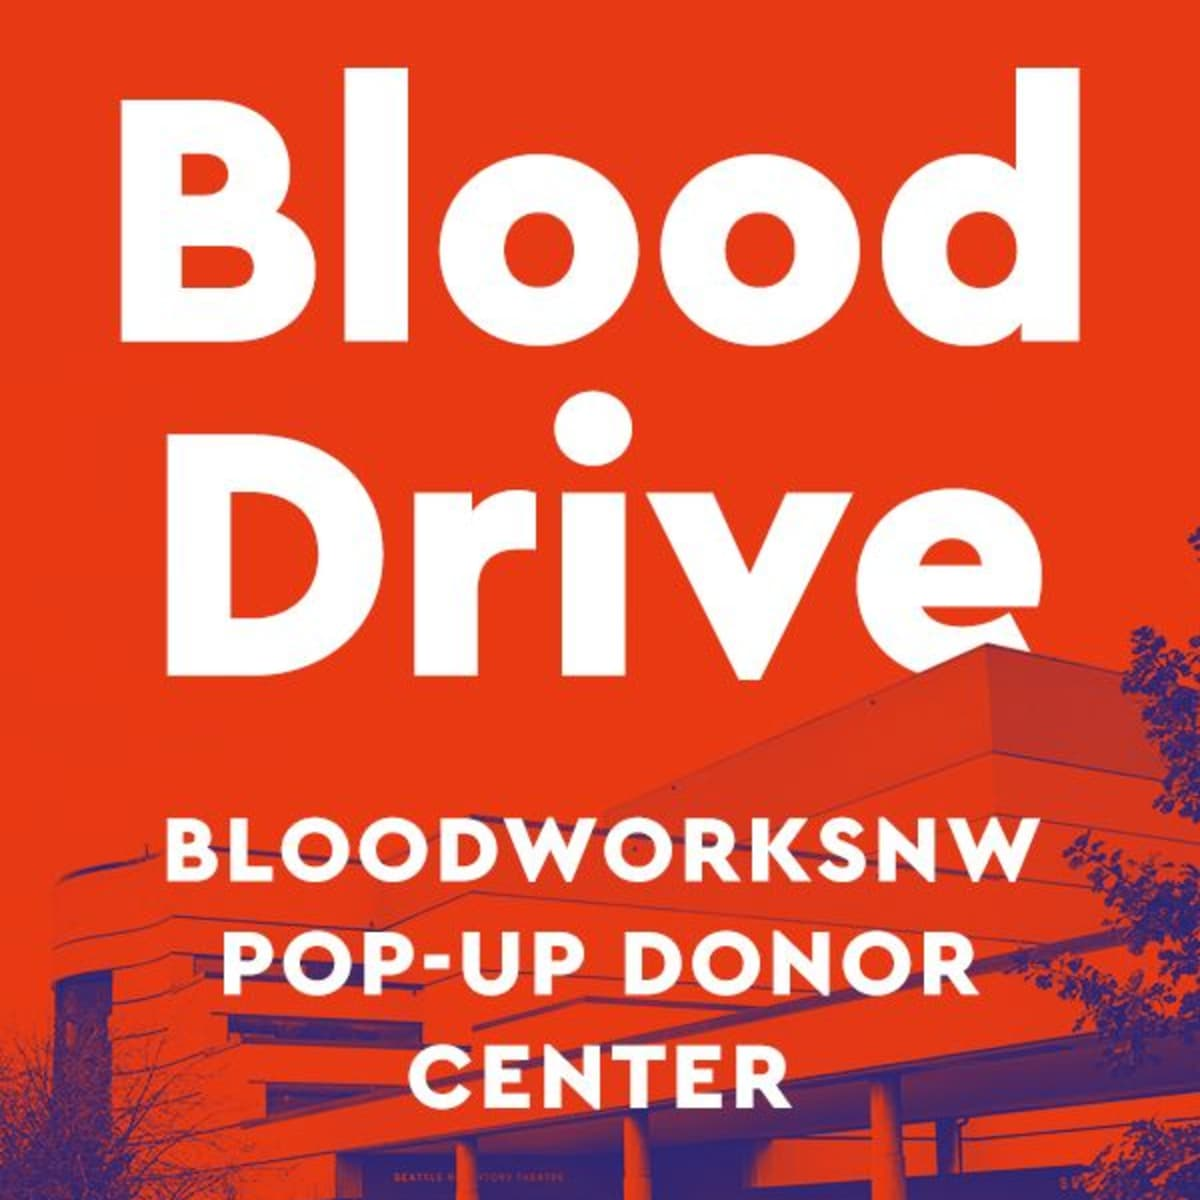 Image representing Bloodworks Northwest Pop-Up Donor Center